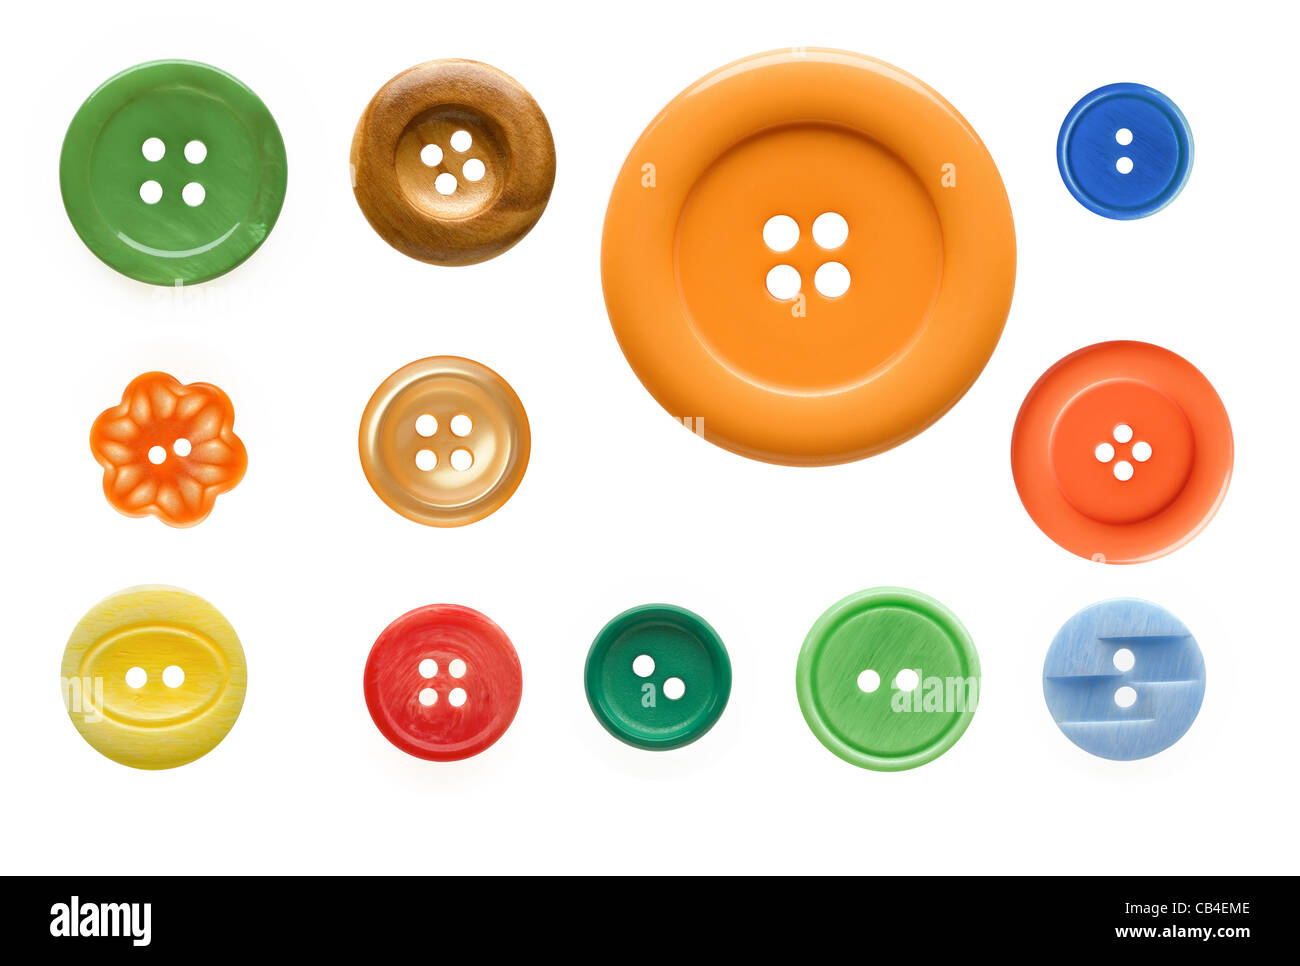 Buttons cut out - Stock Image